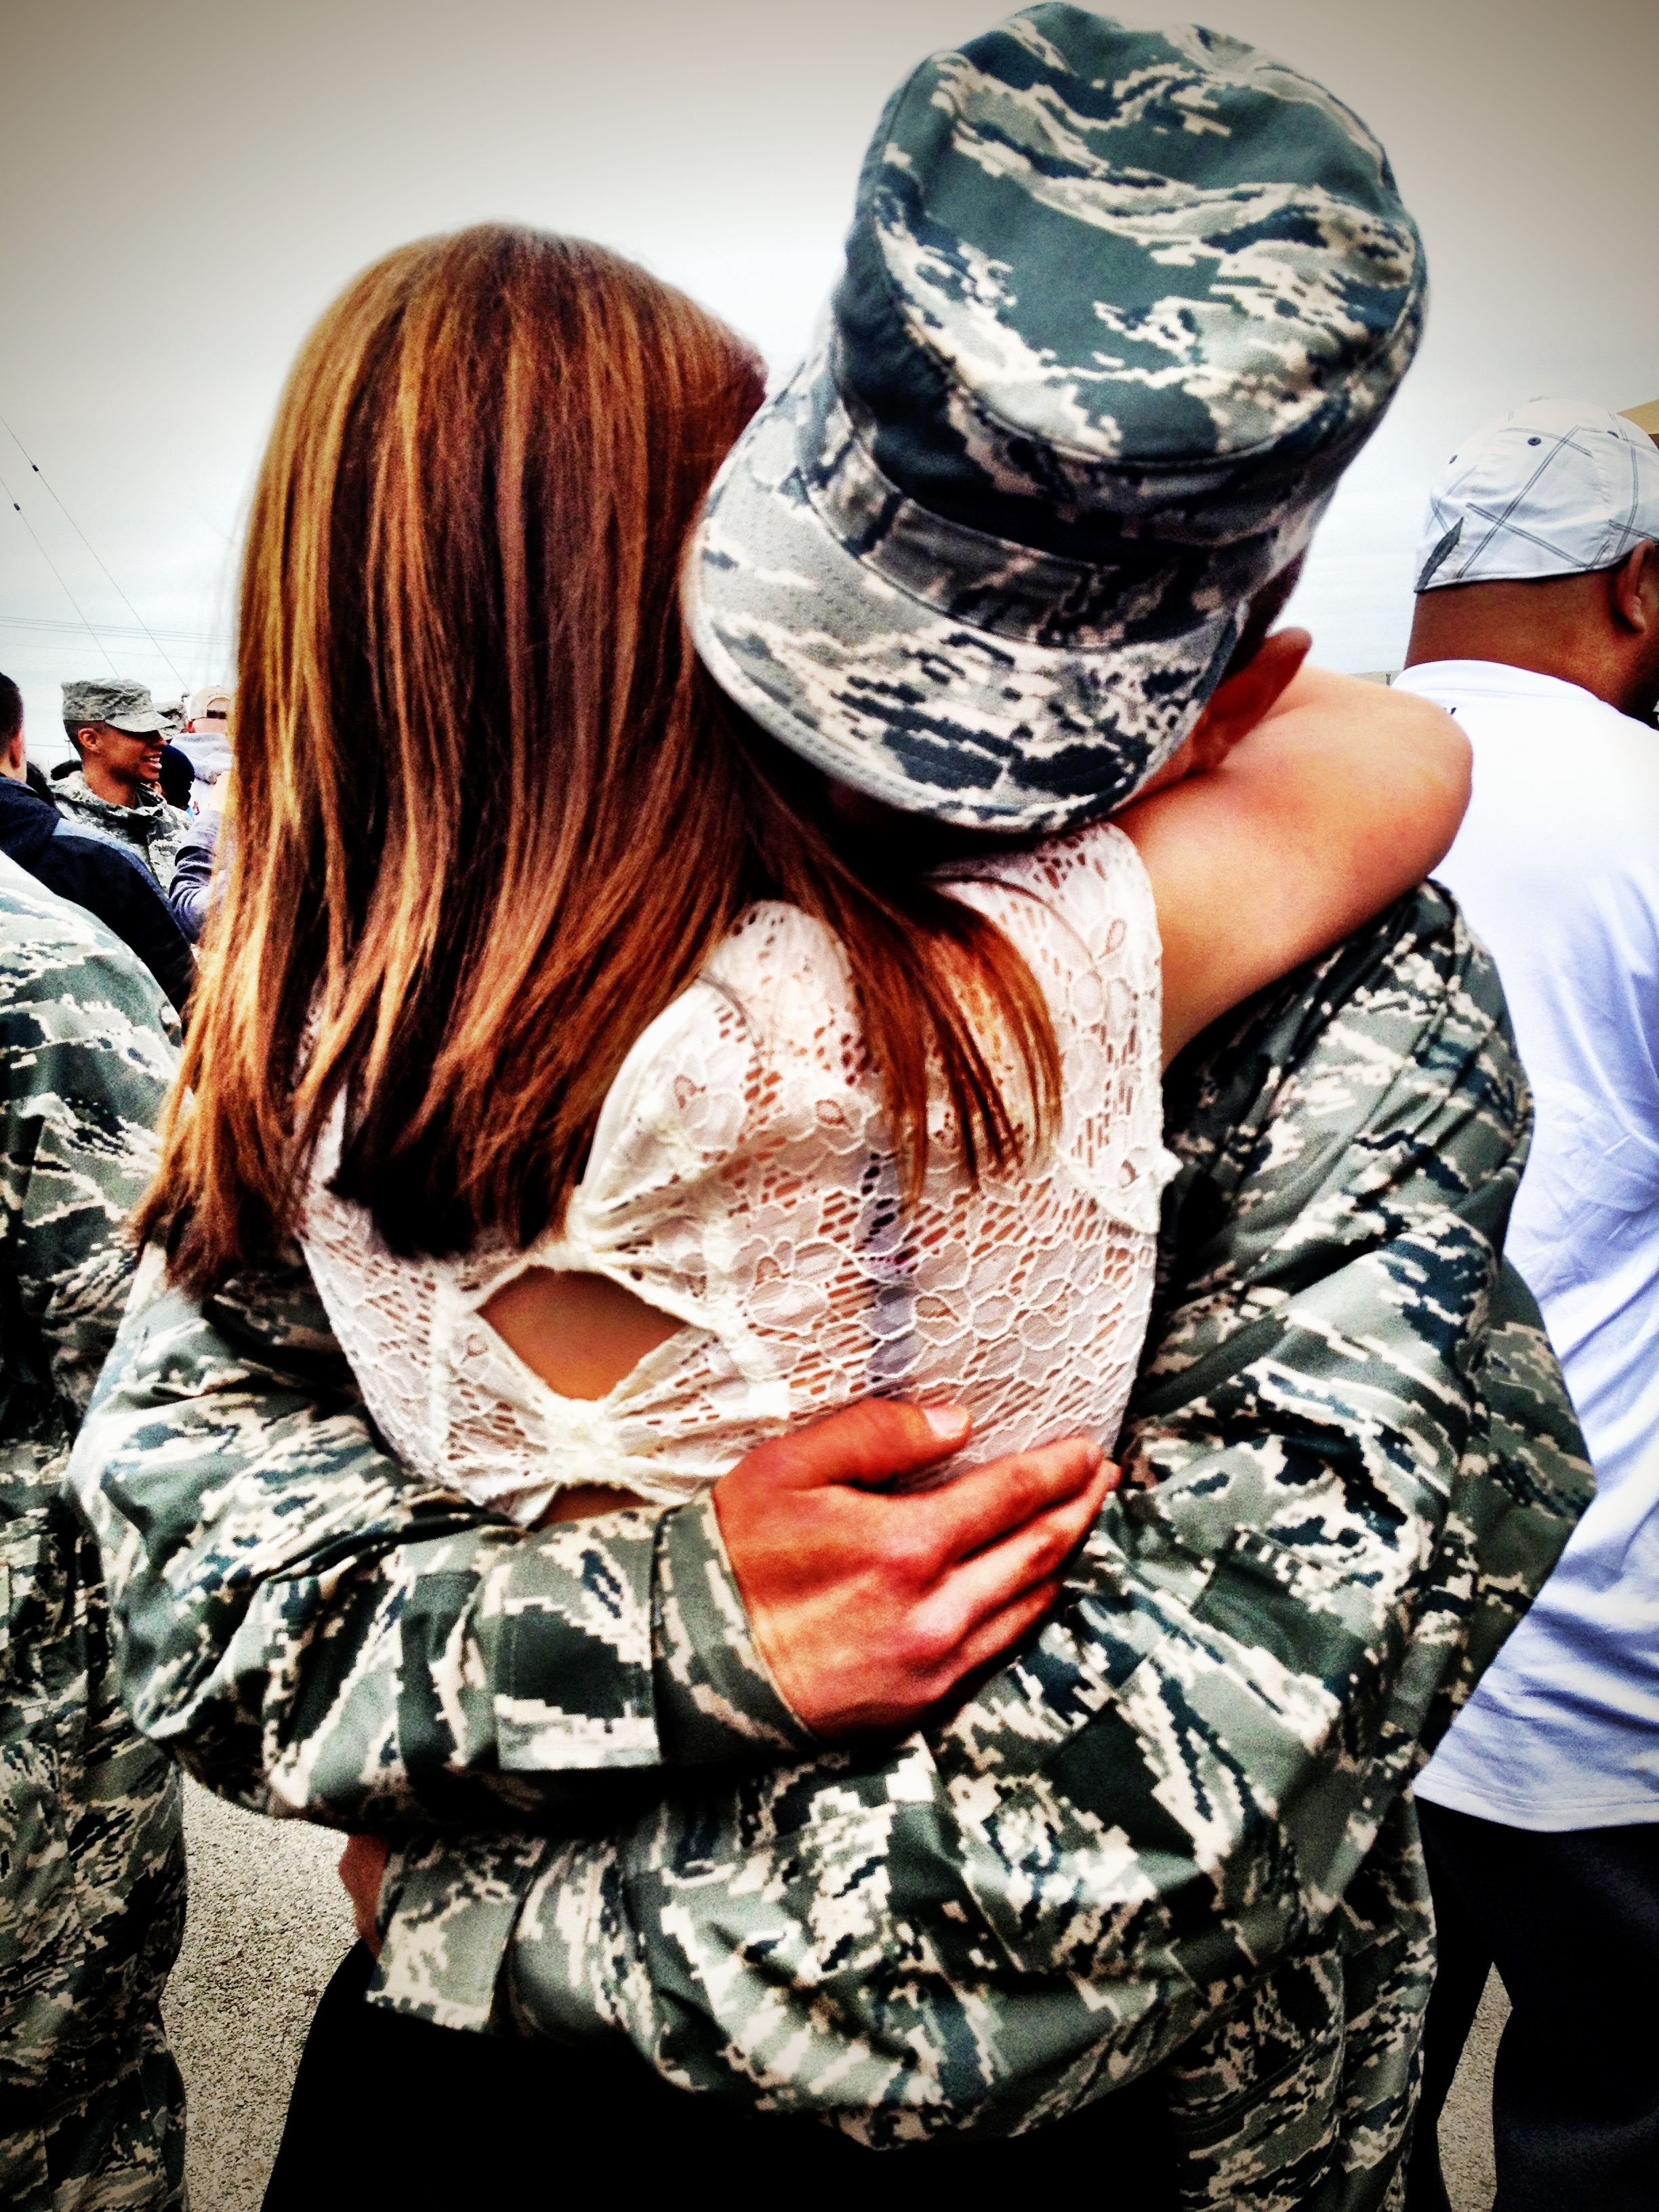 Military Dating at MilitaryFriends.com